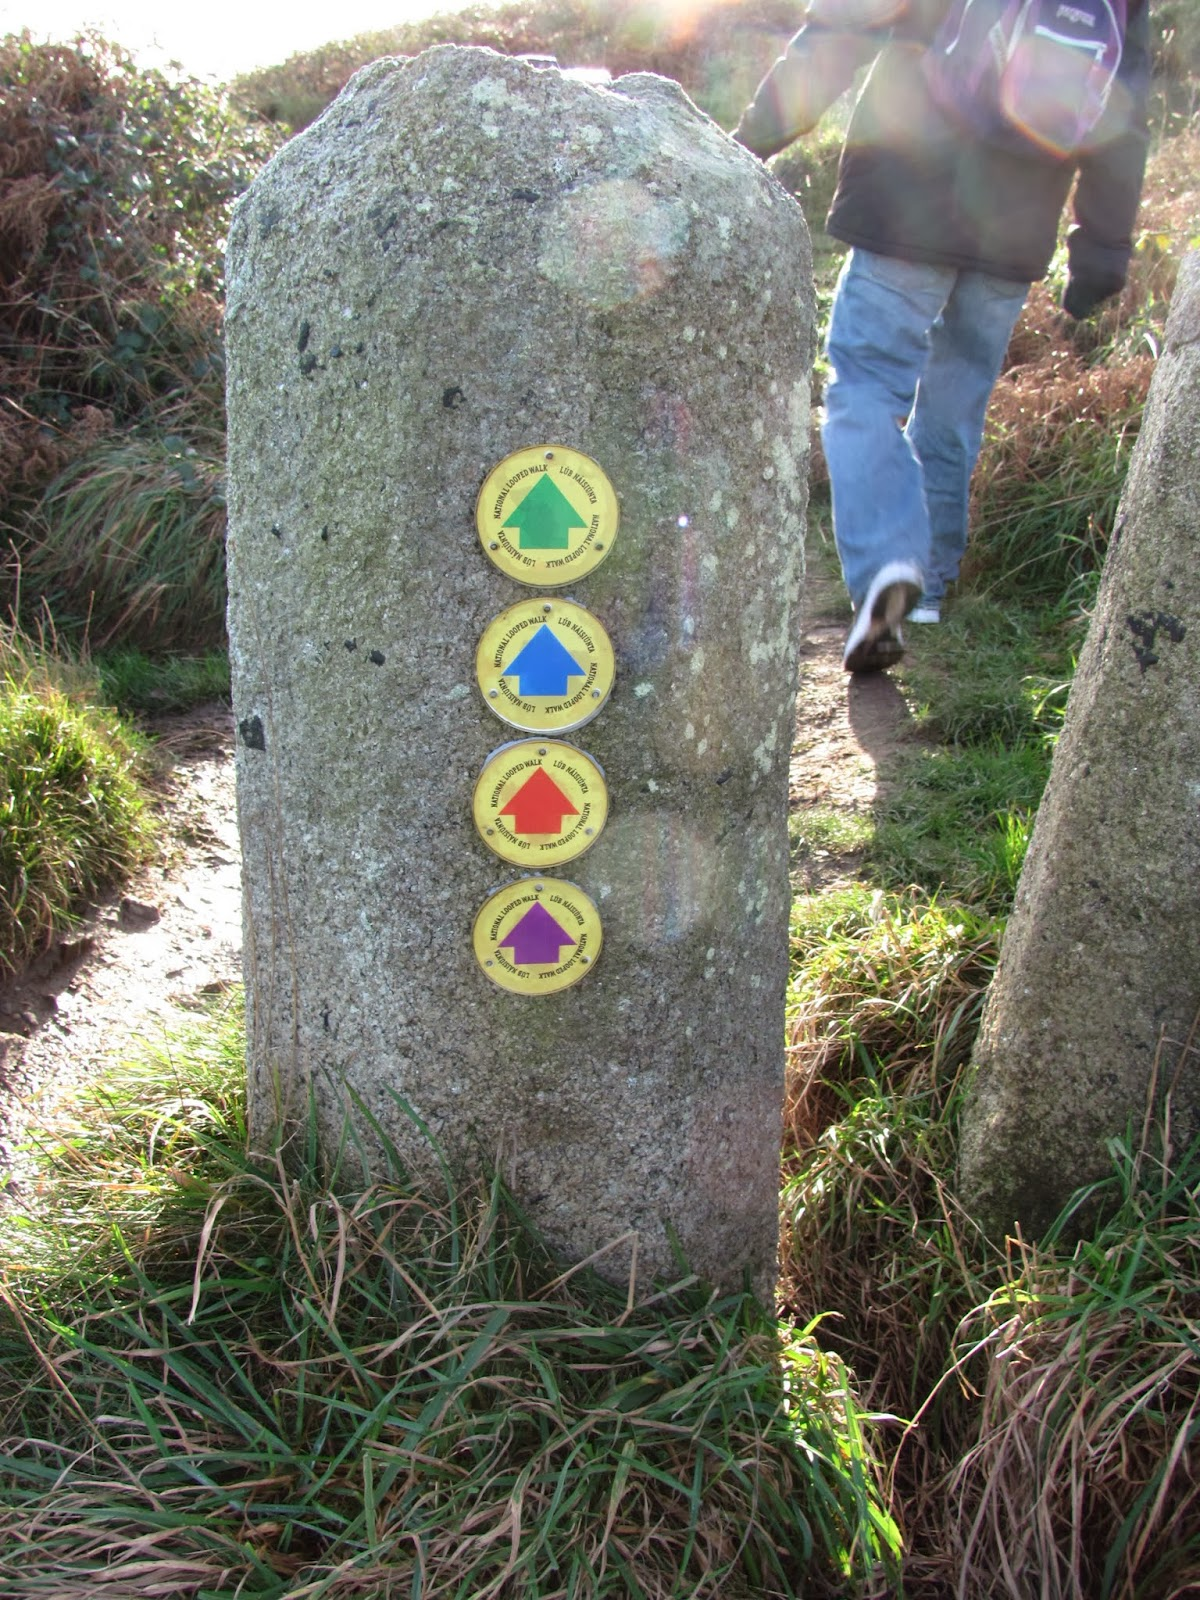 Color-Coded Trails are Well-Marked in Howth, Co. Dublin, Ireland